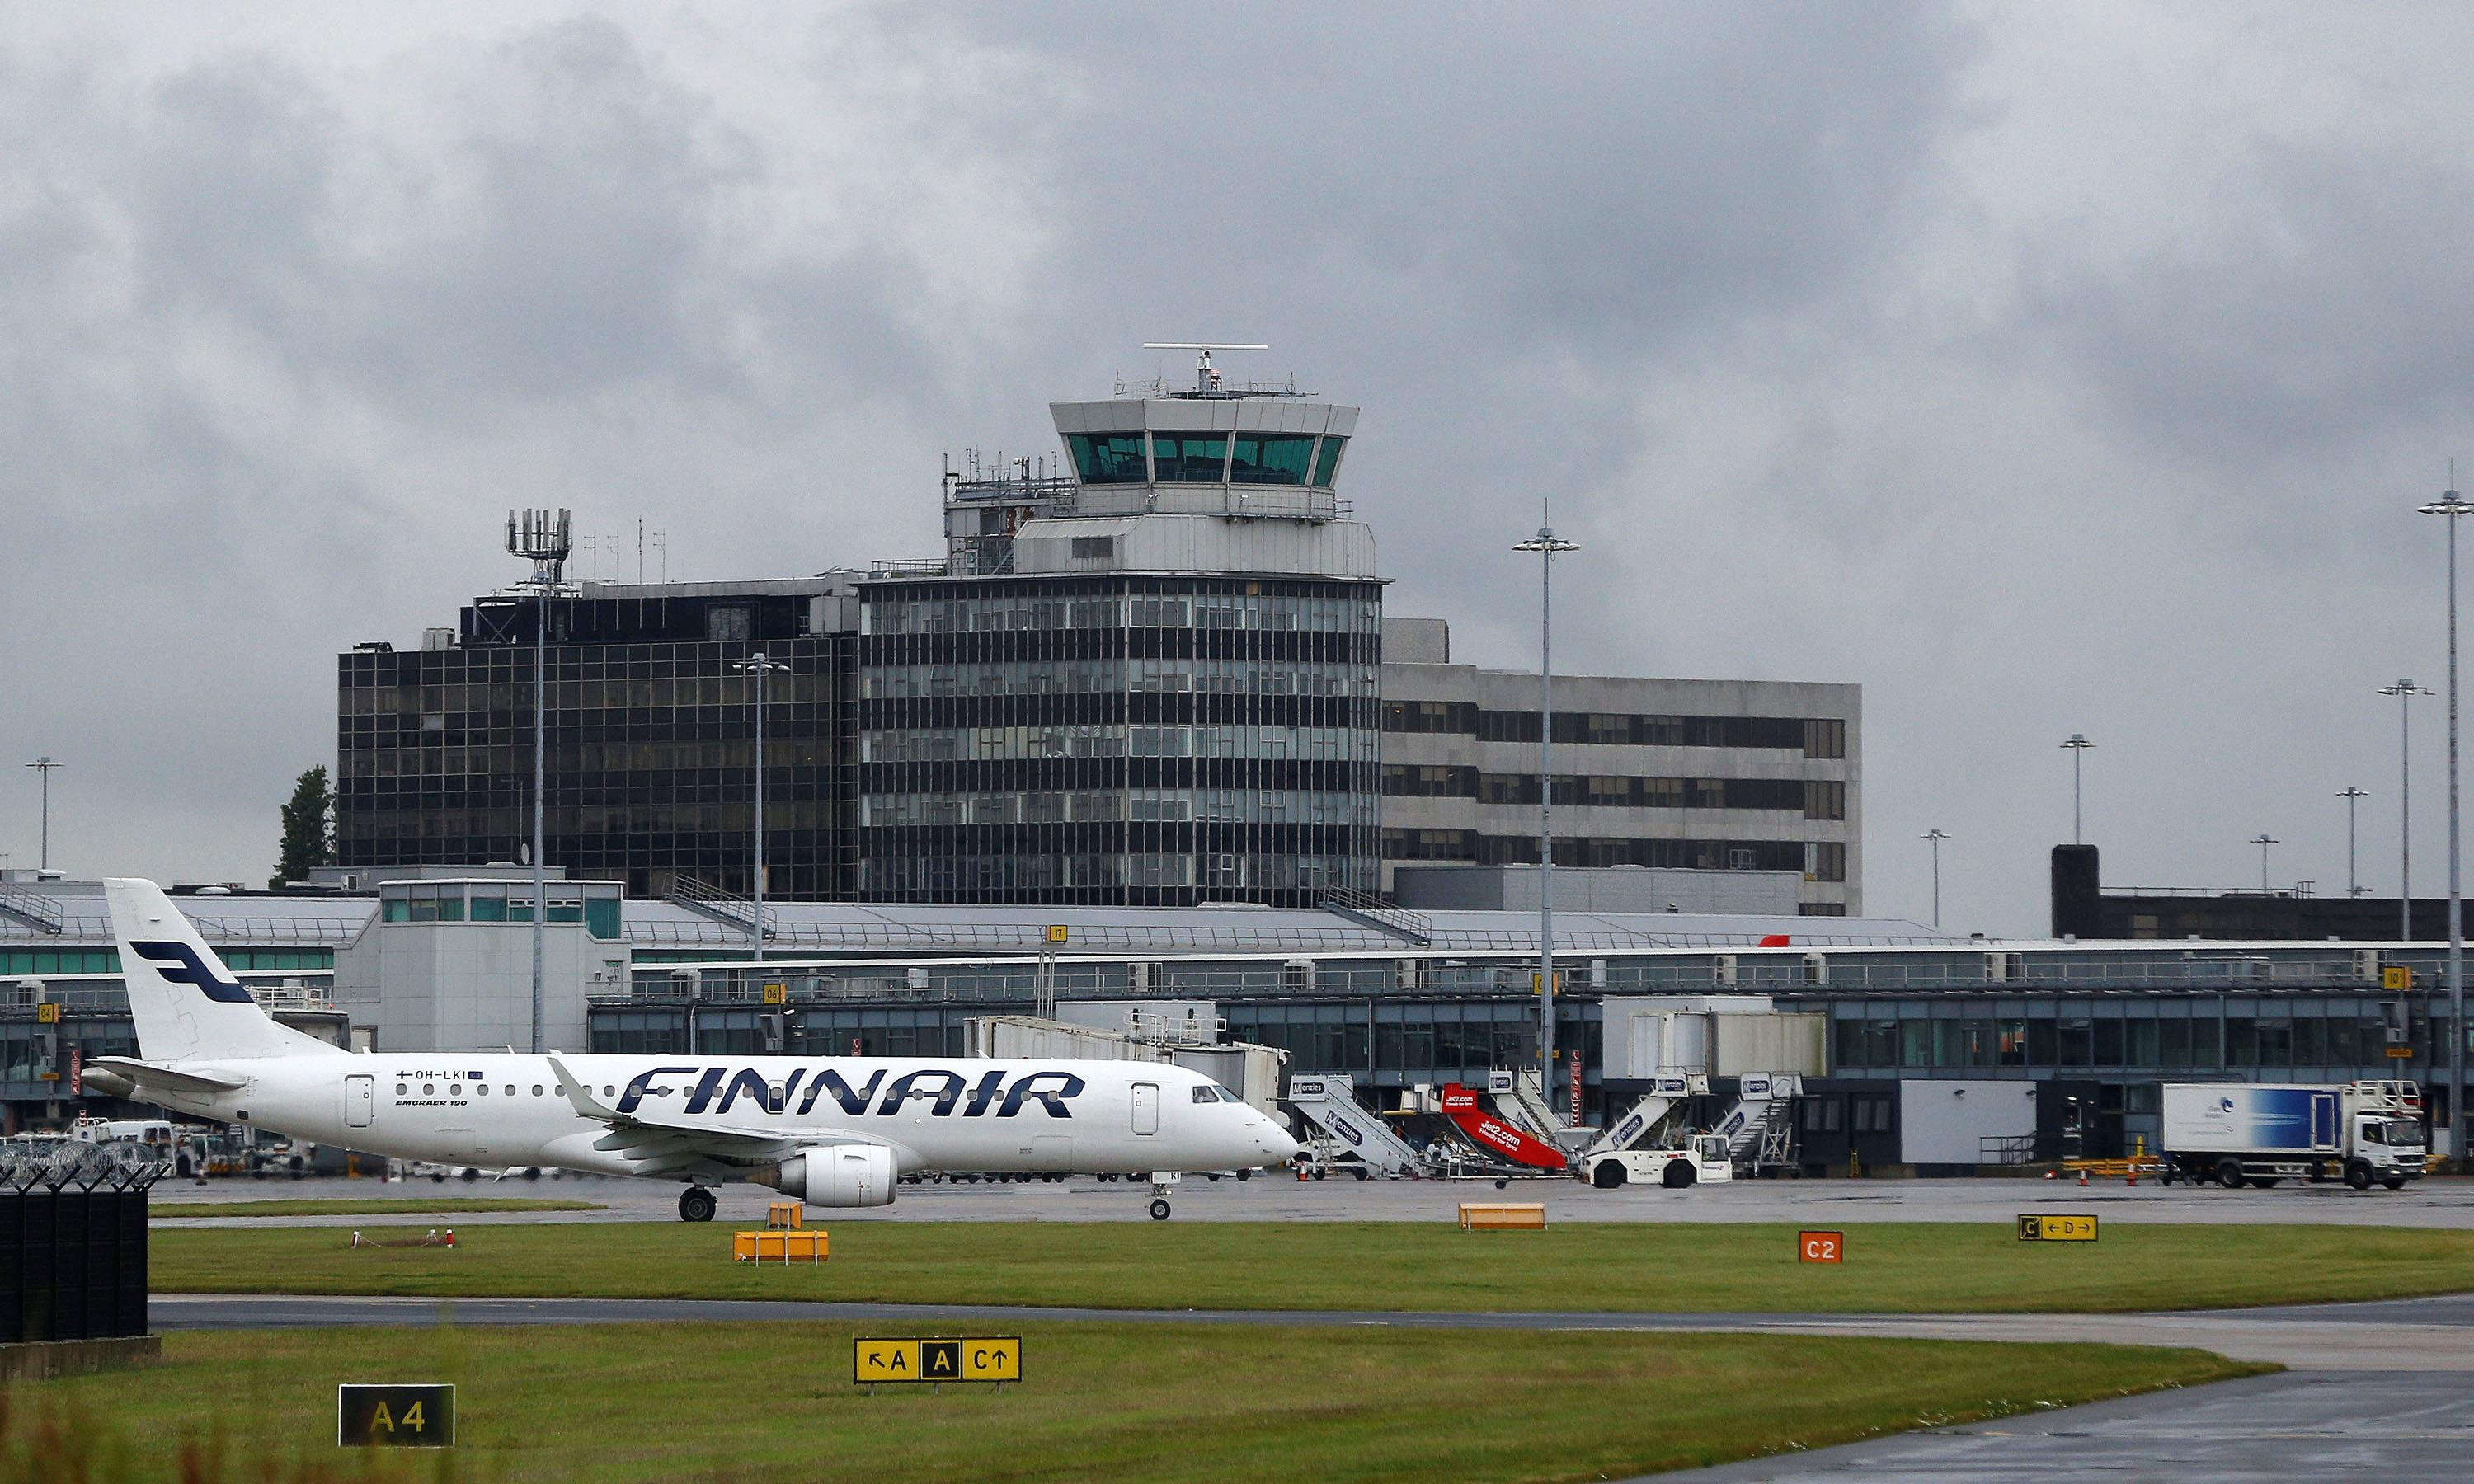 Manchester airport 'back to normal' after cancelled flights